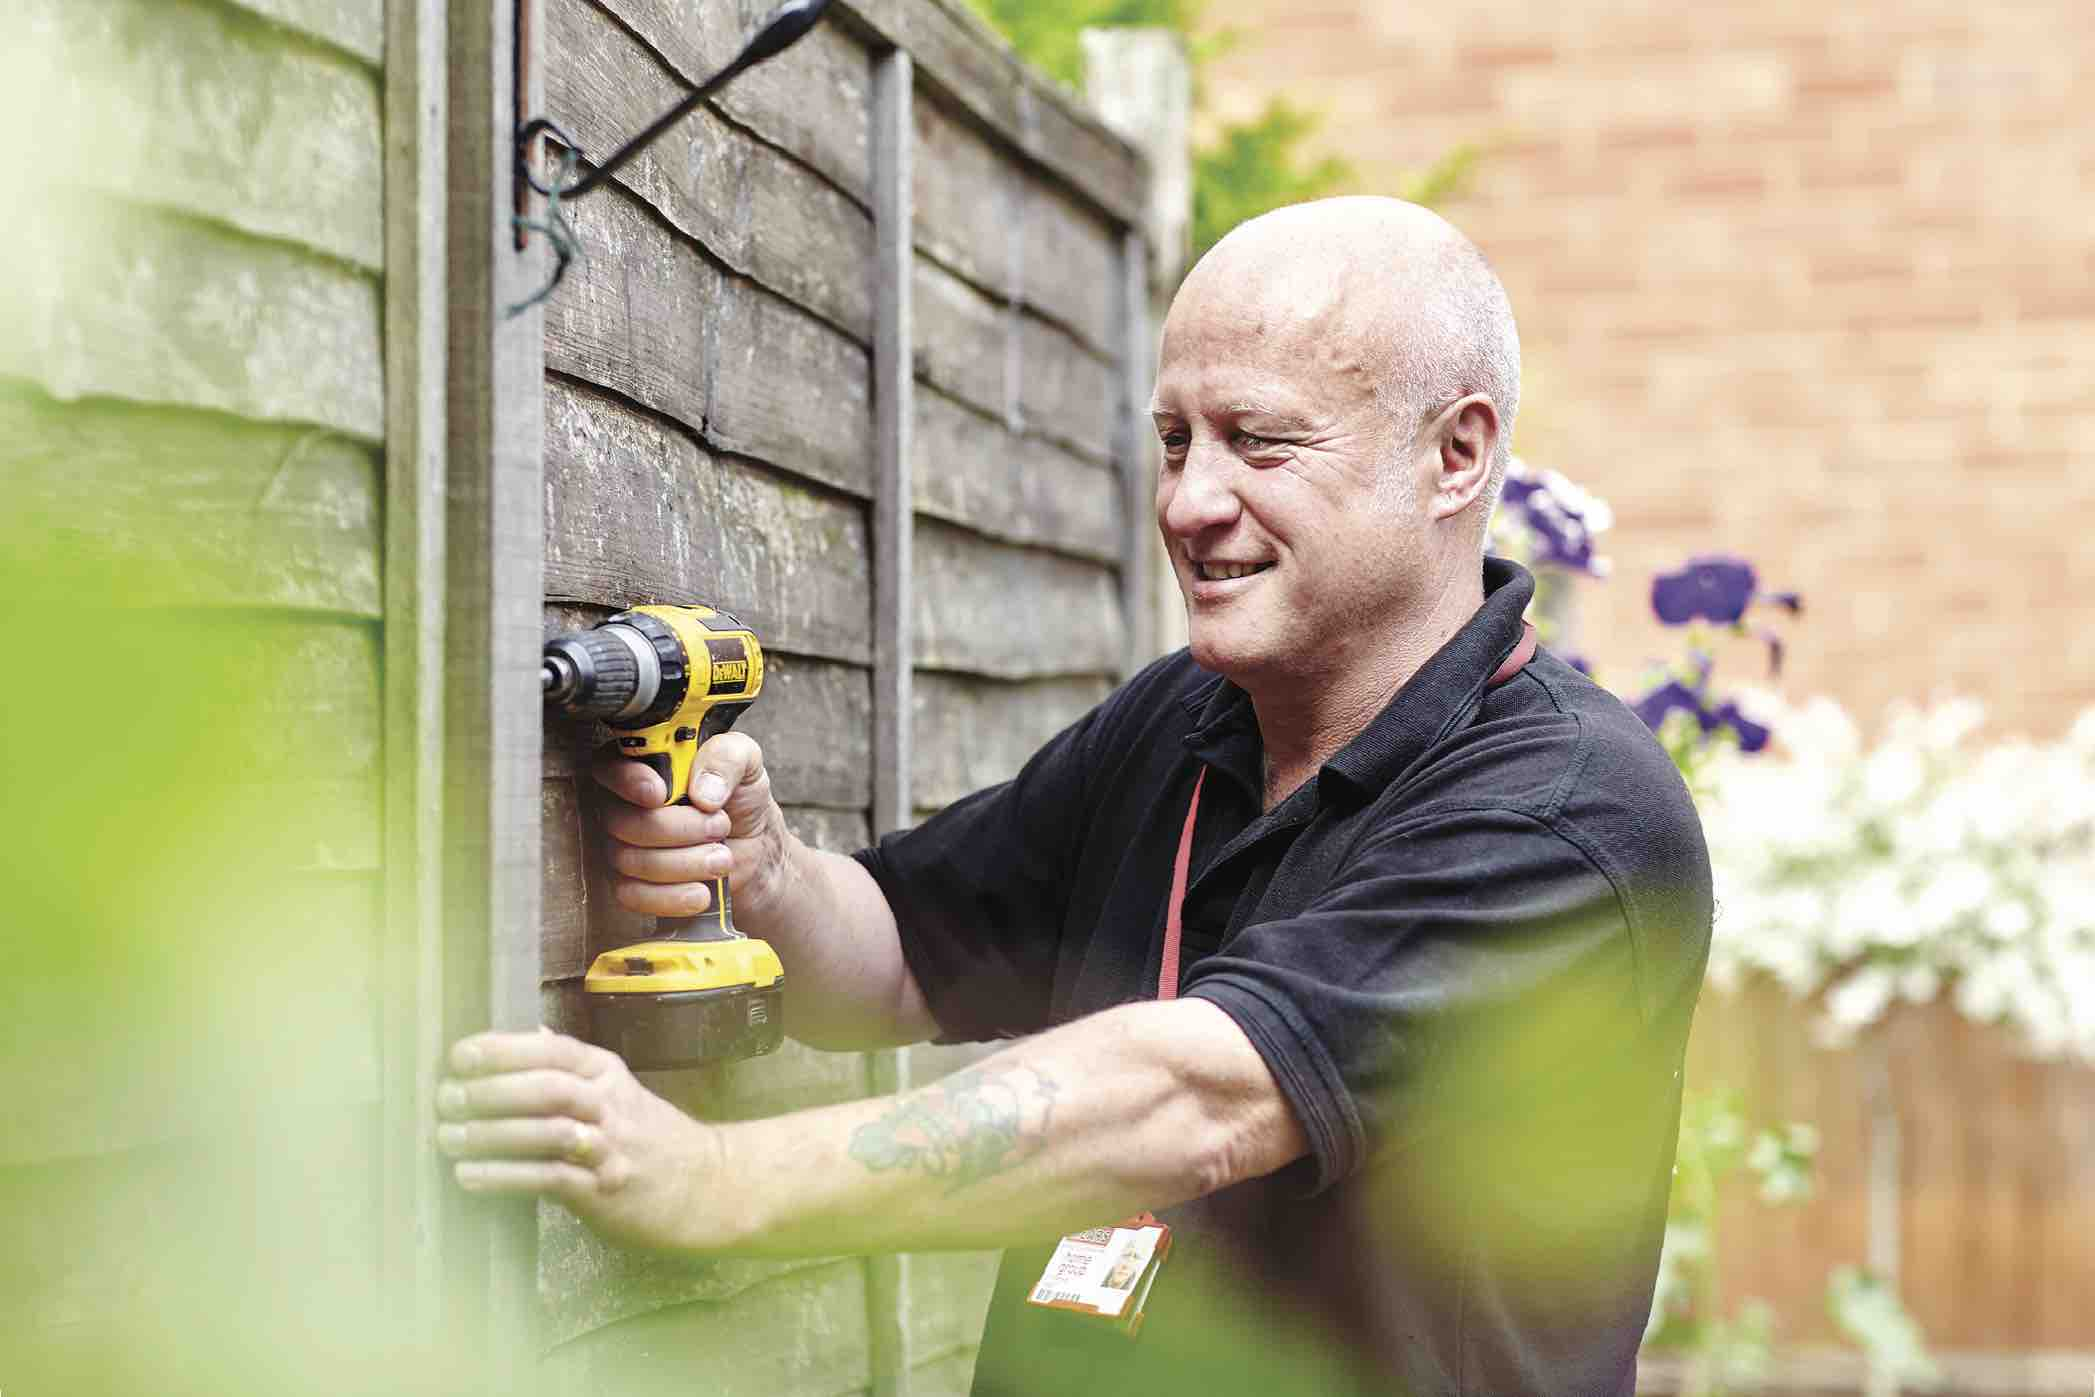 Mears colleague repairing a fence outside